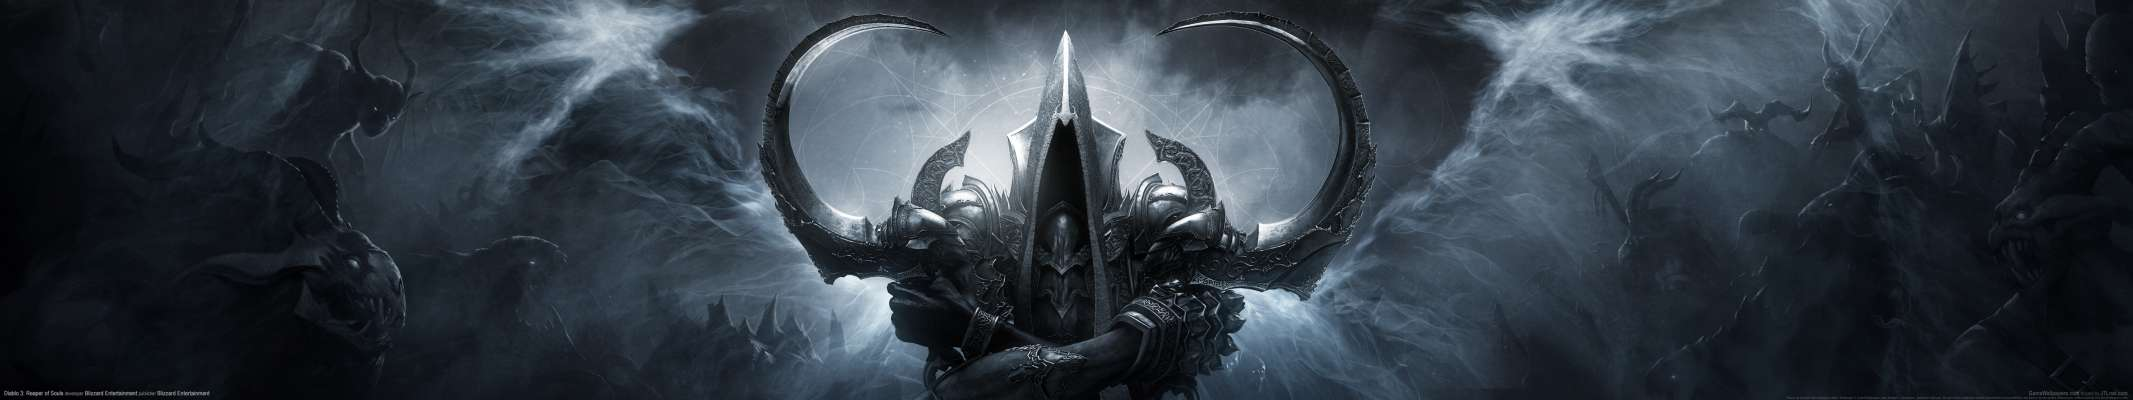 Diablo 3 Reaper Of Souls Triple Screen Wallpaper Or Background